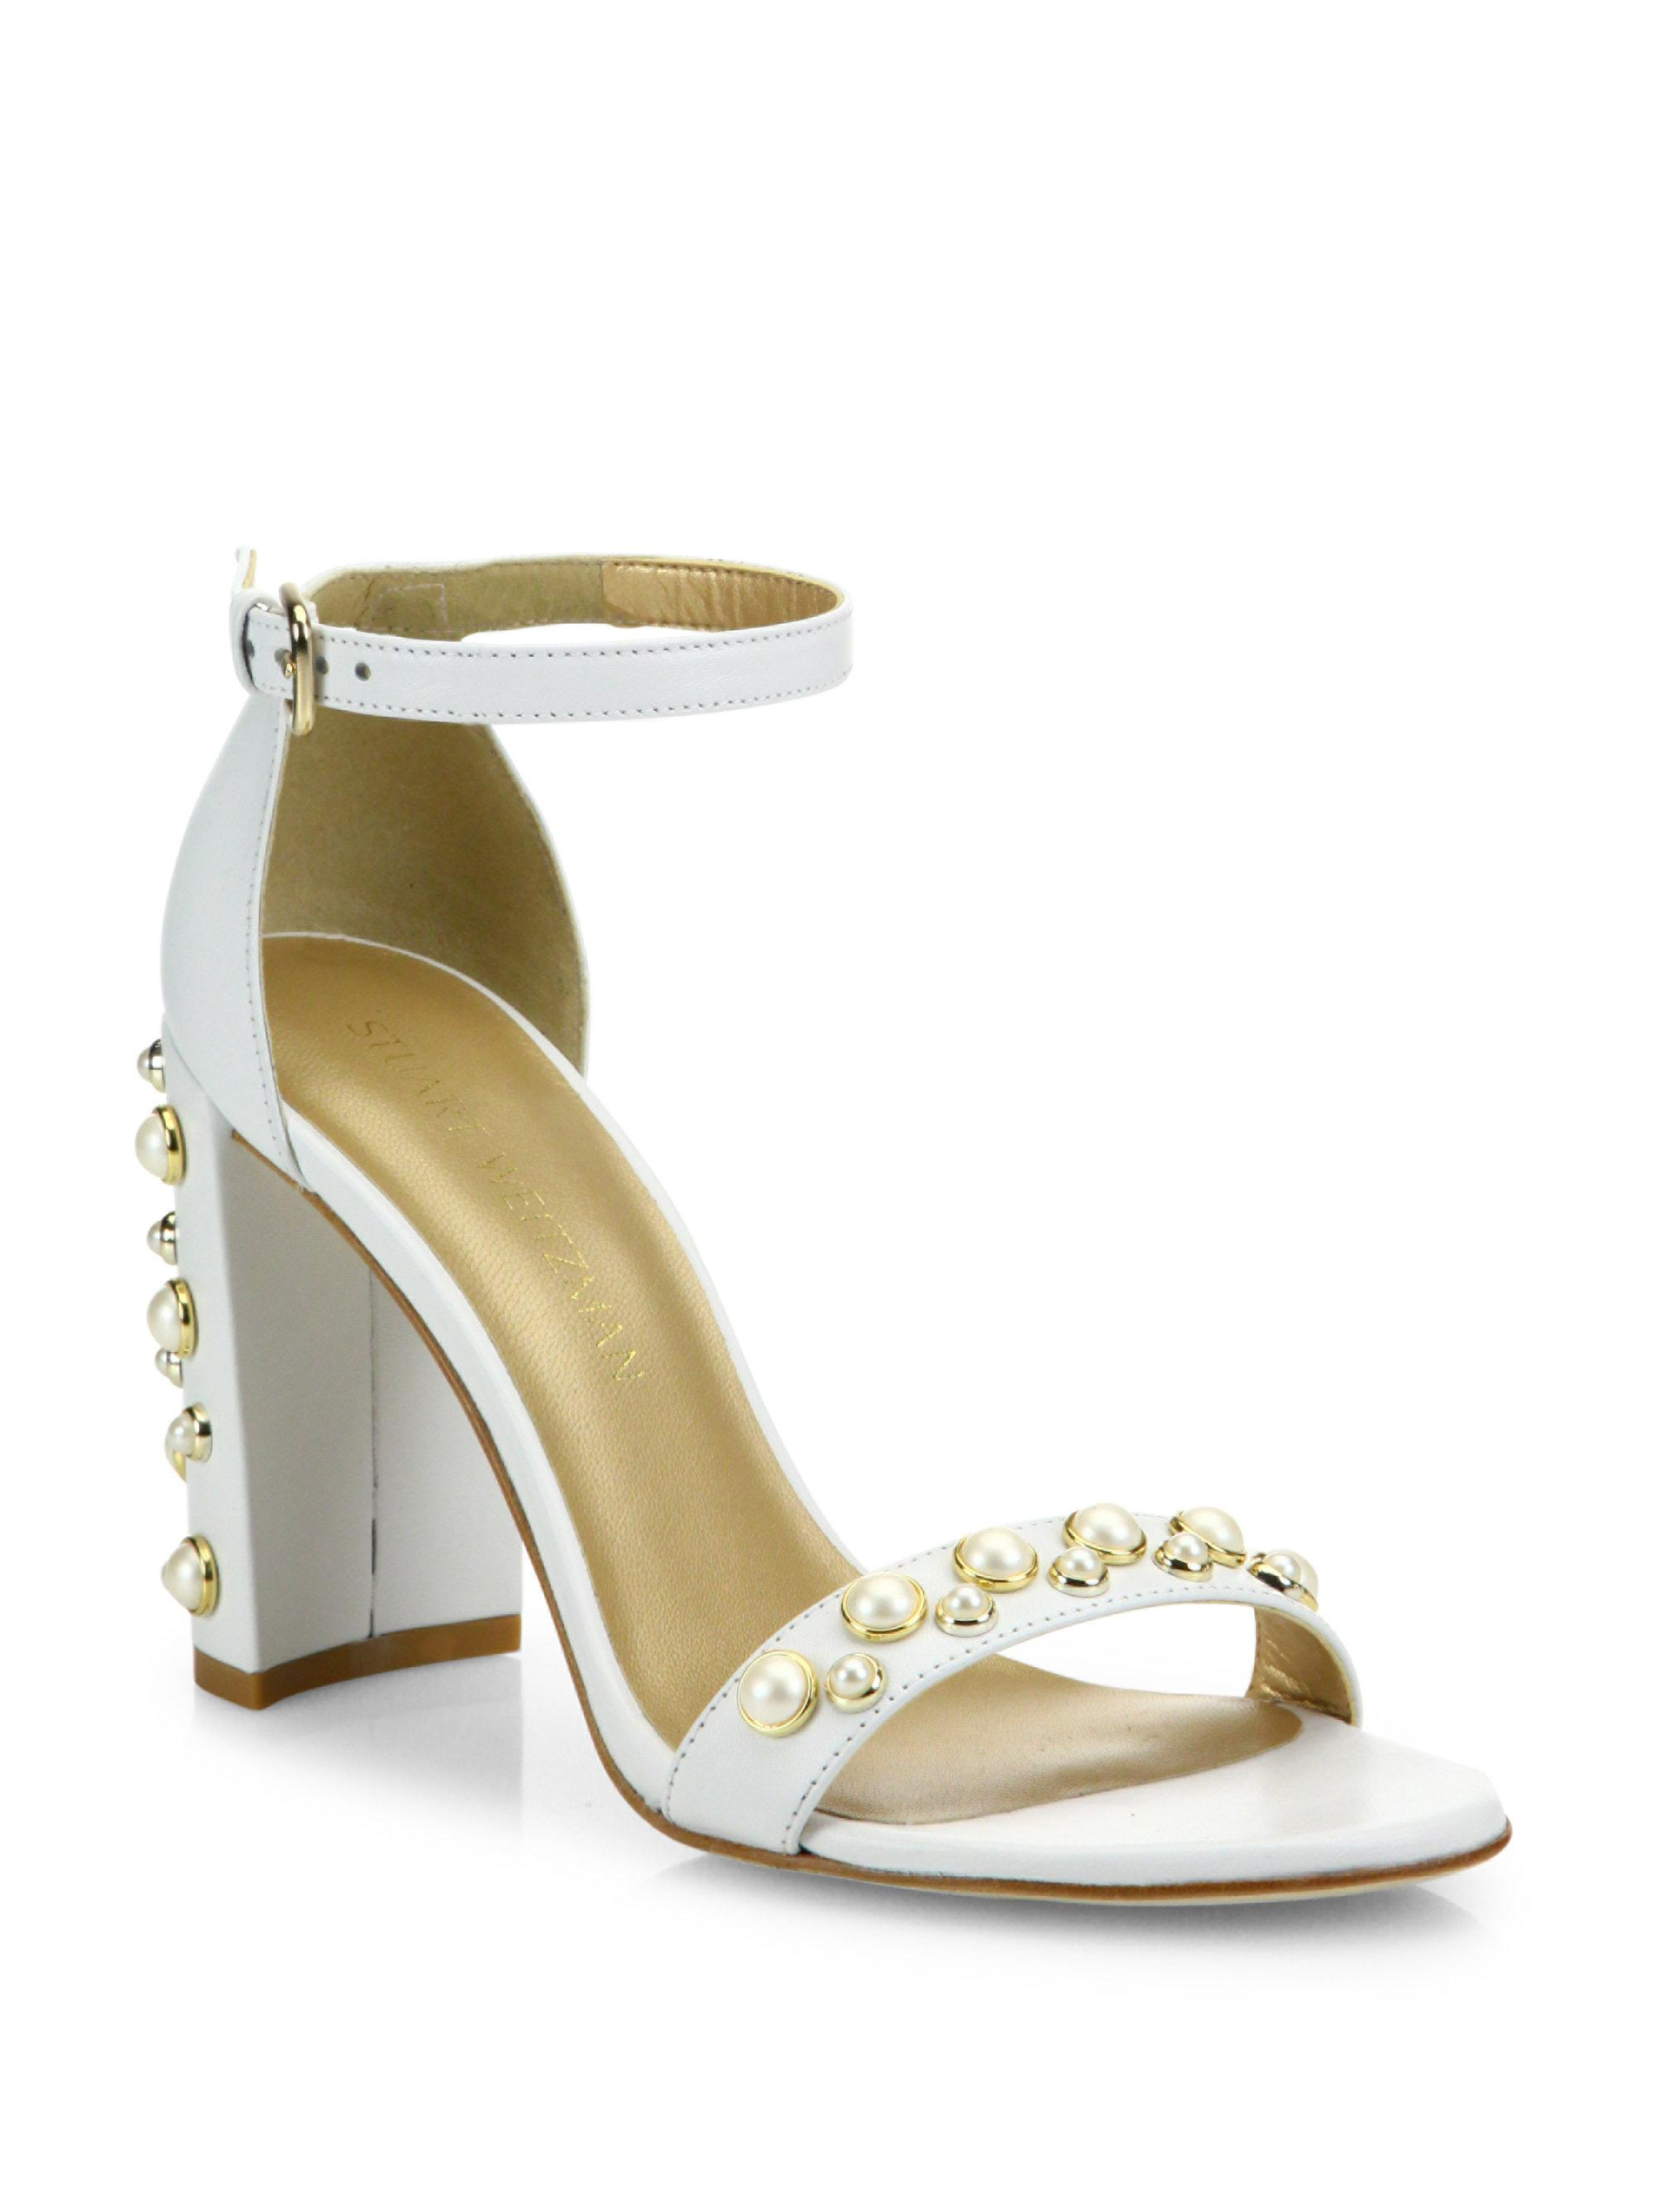 da1a1b86c3d Lyst - Stuart Weitzman Morepearls Studded Leather Ankle Strap ...